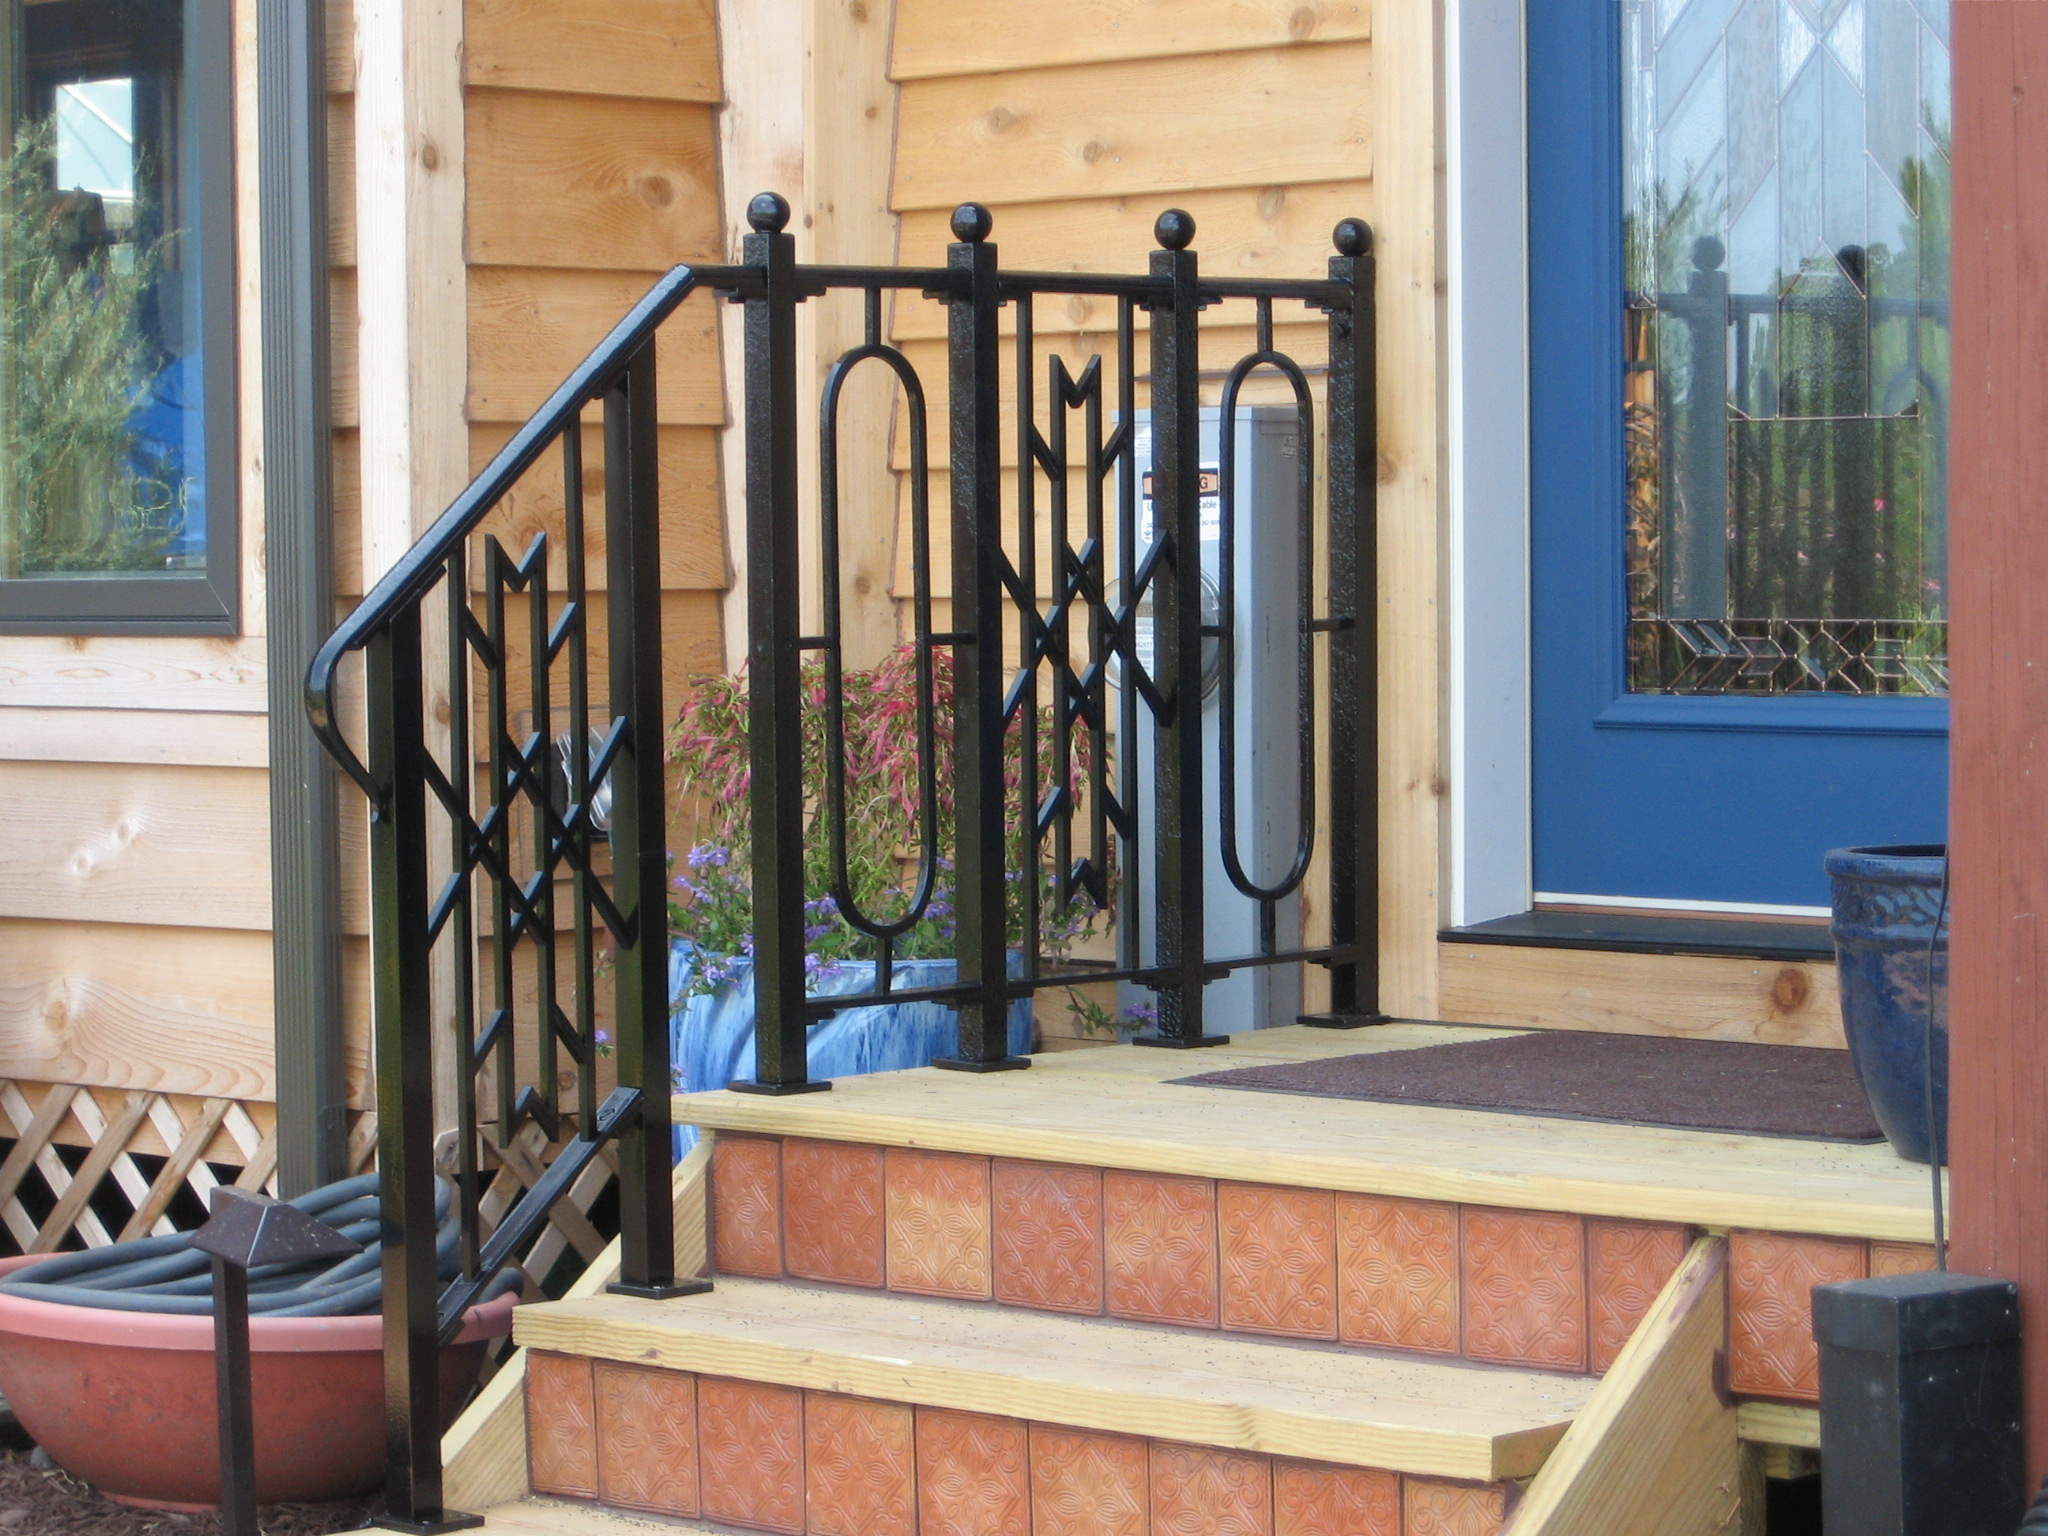 Railing designed from the beveled glass in door